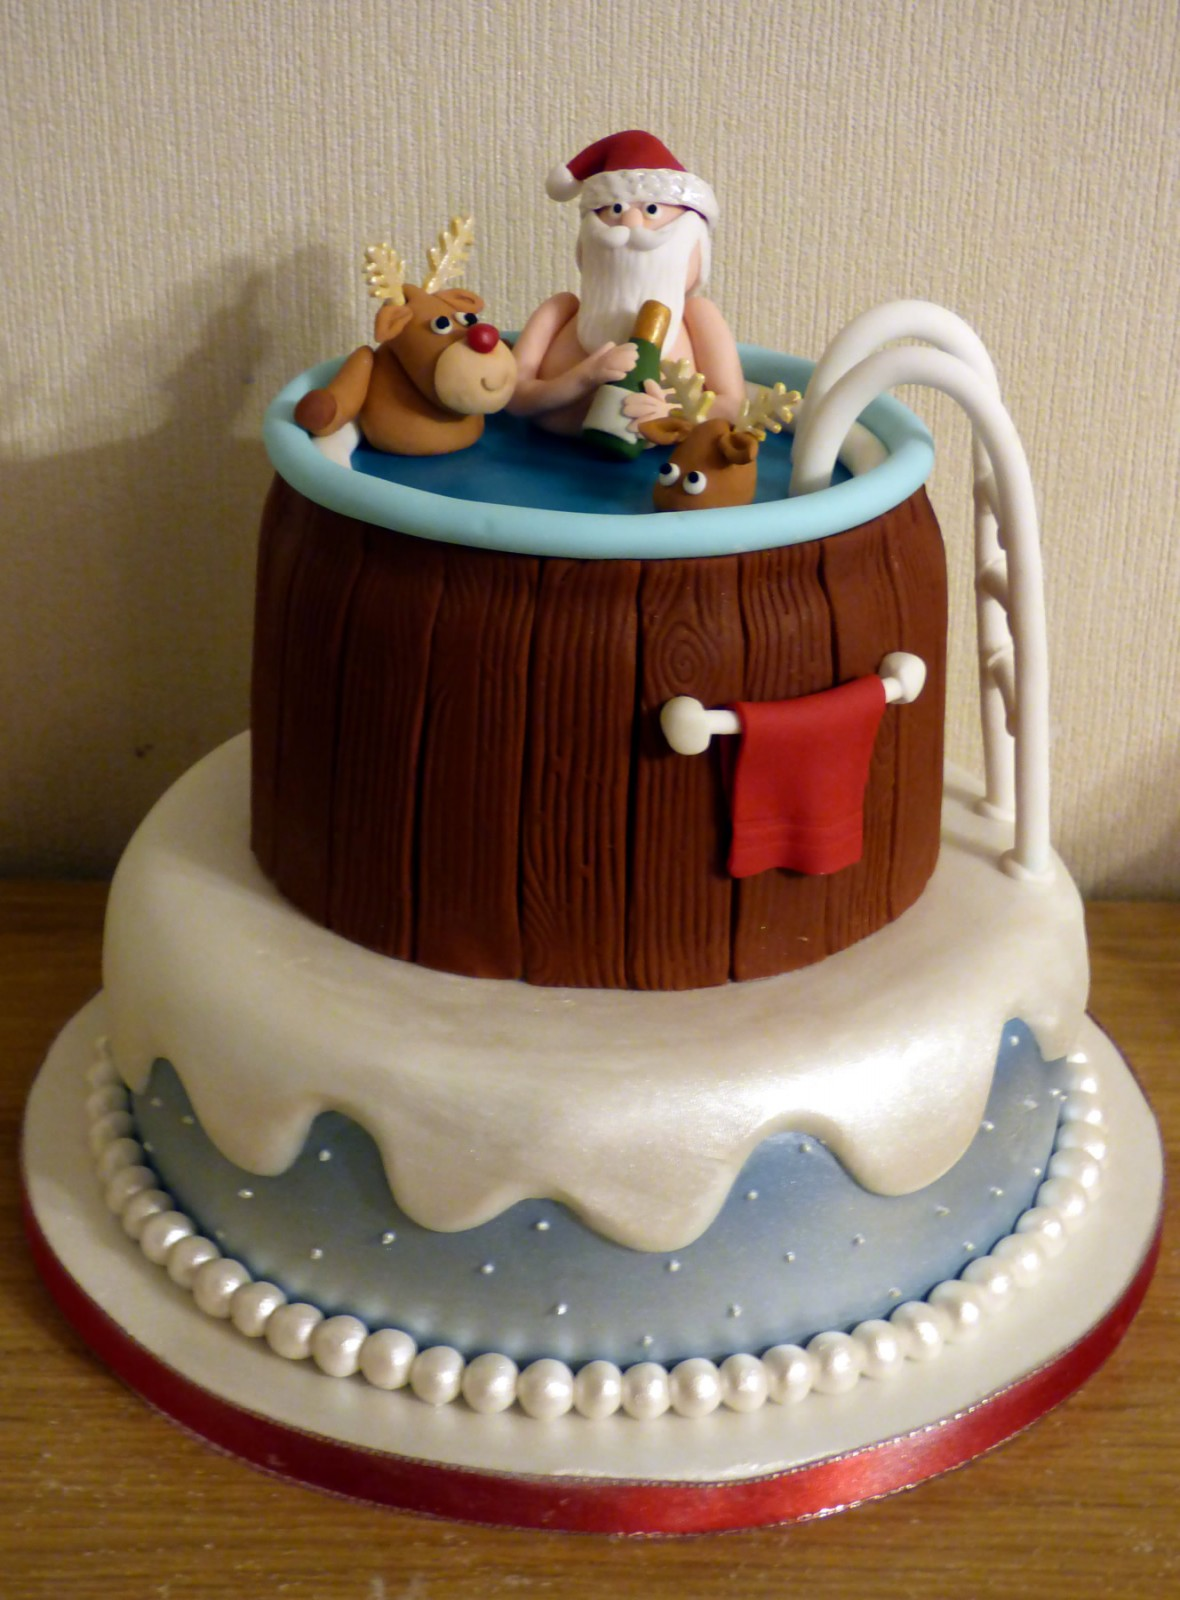 Novelty Christmas Cake Images : Santa and Rudolph Hot Tub Novelty Christmas Cake   Susie s ...